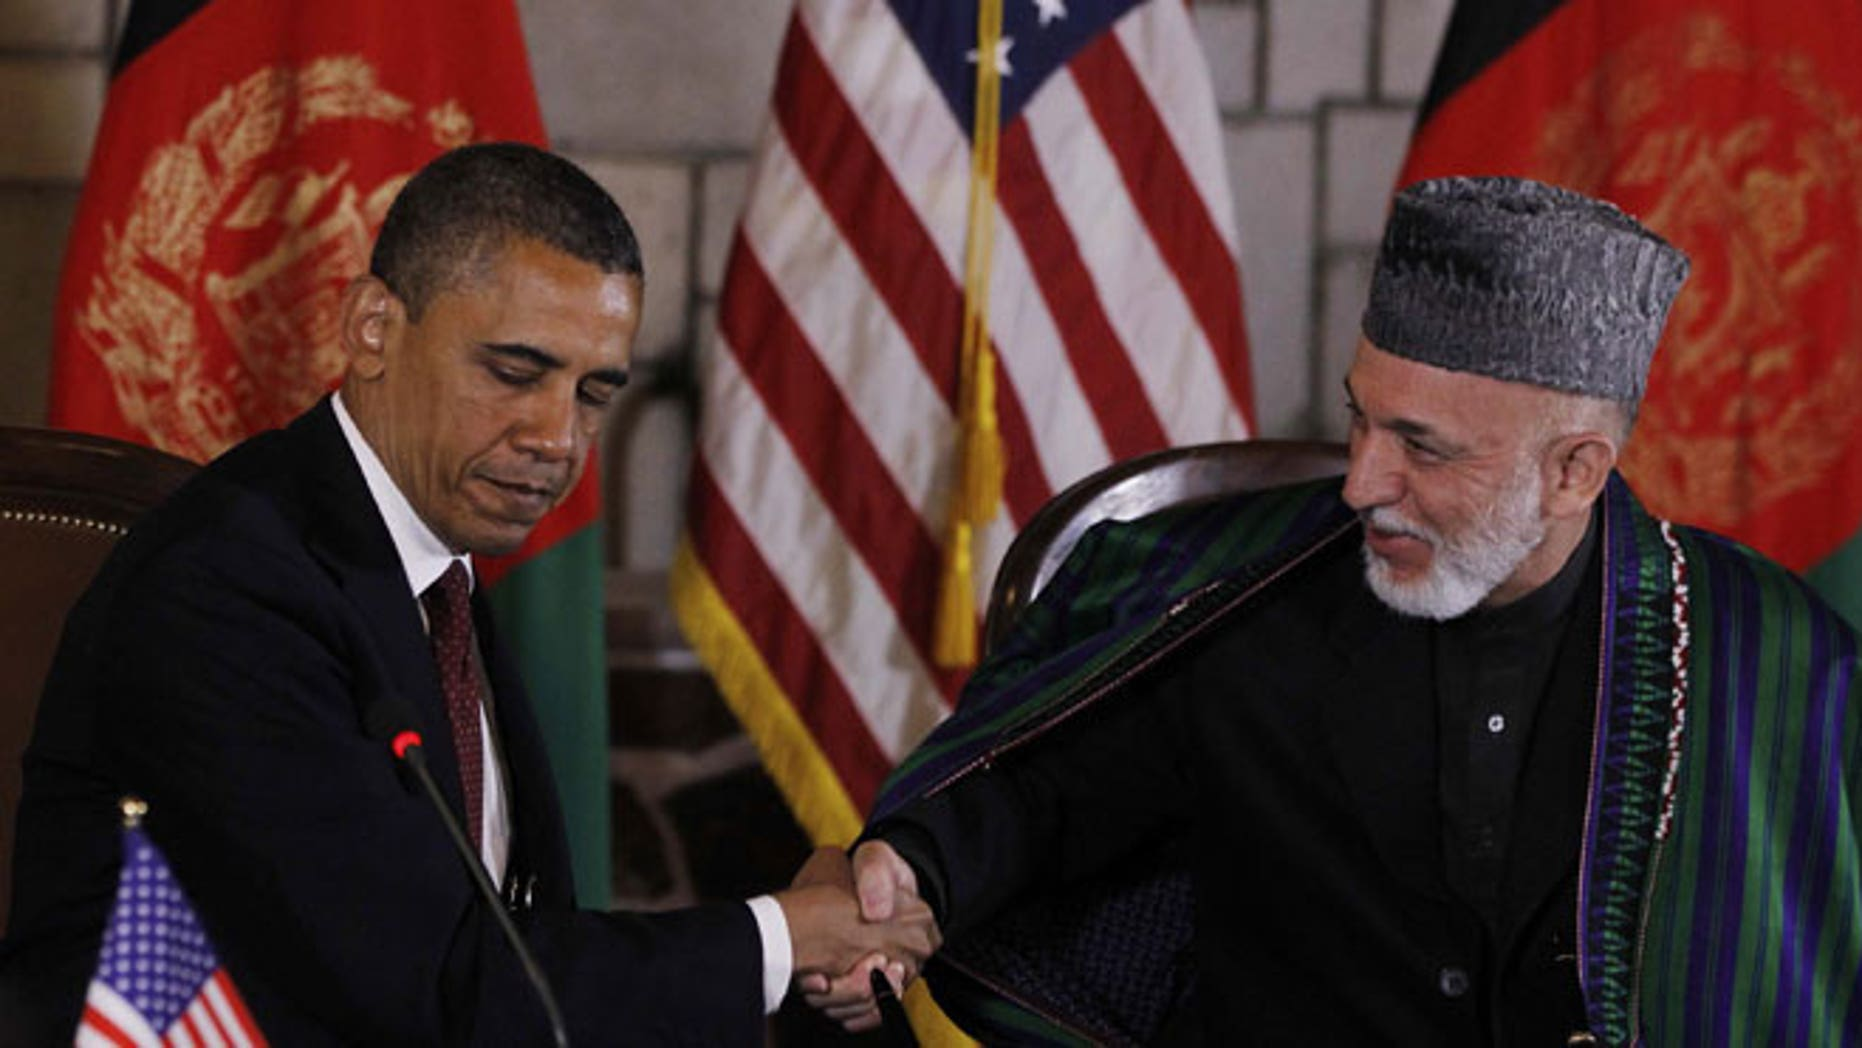 May 2, 2012: President Barack Obama and Afghan President Hamid Karzai shake hands after making statements before signing a strategic partnership agreement at the presidential palace in Kabul, Afghanistan.